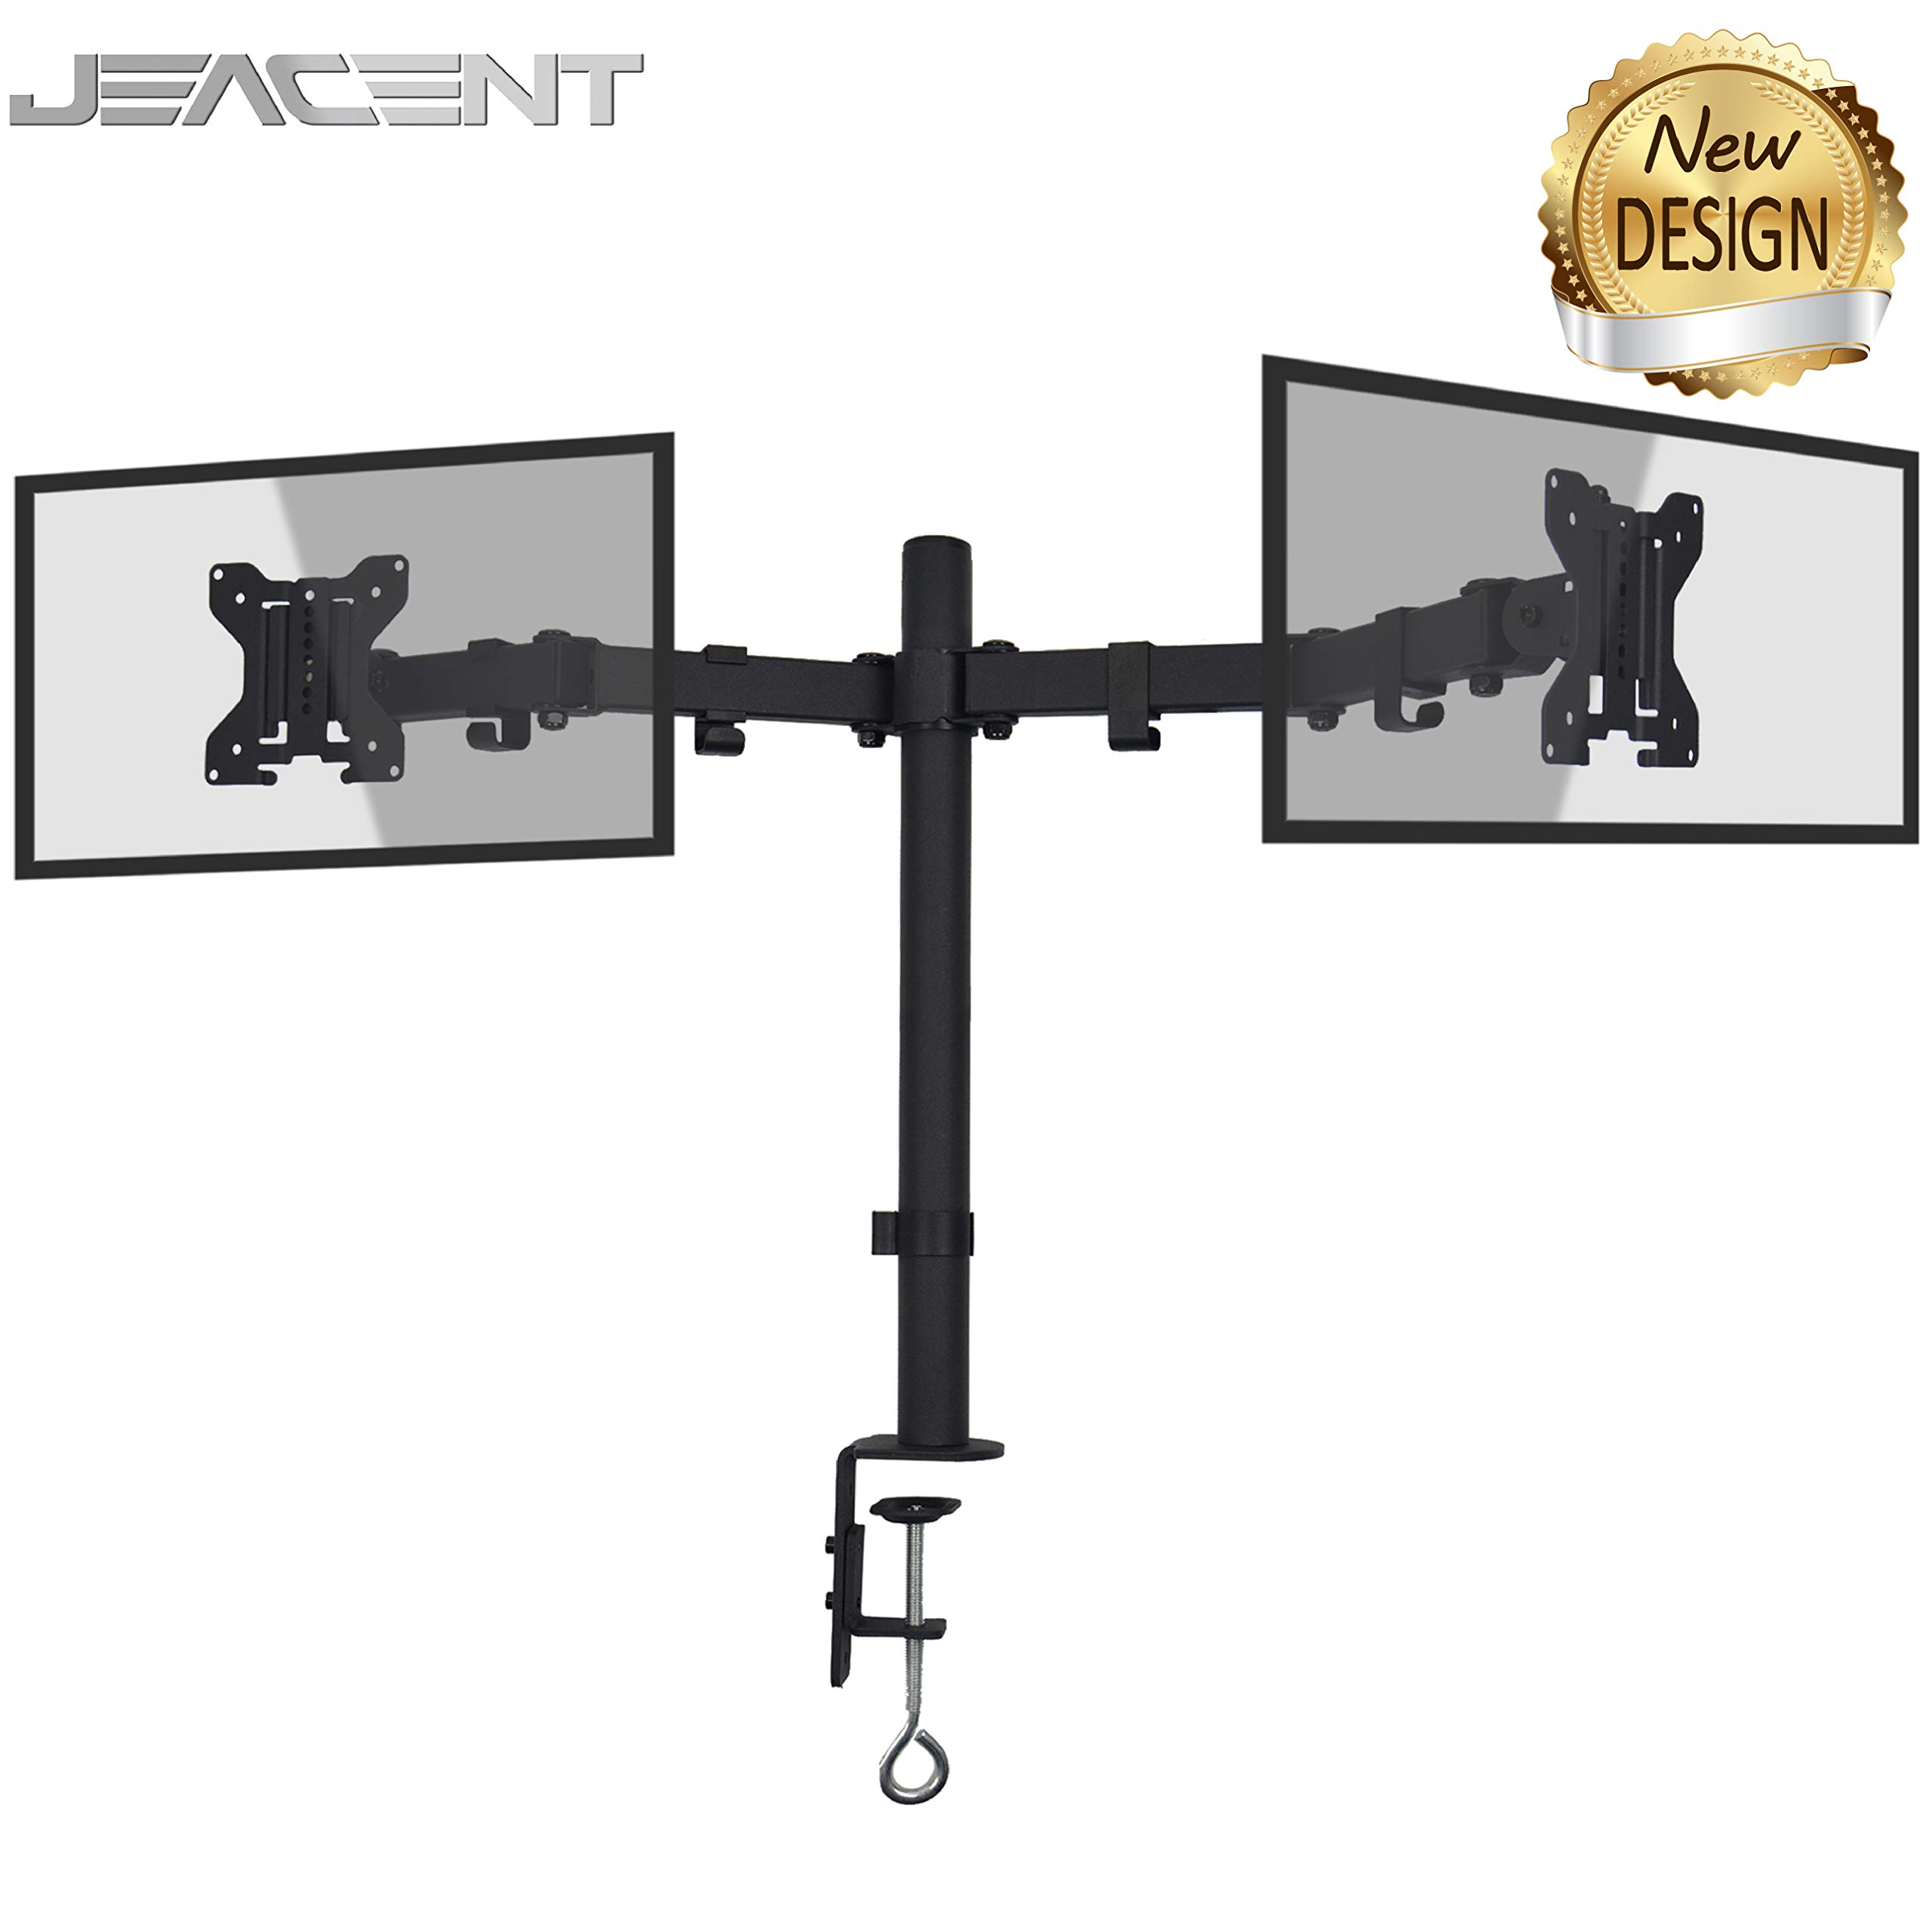 "Jeacent Dual Monitor Desk Mount Stand LCD Computer Fully Adjustable Arm 13"" to 27'', 22 lbs"